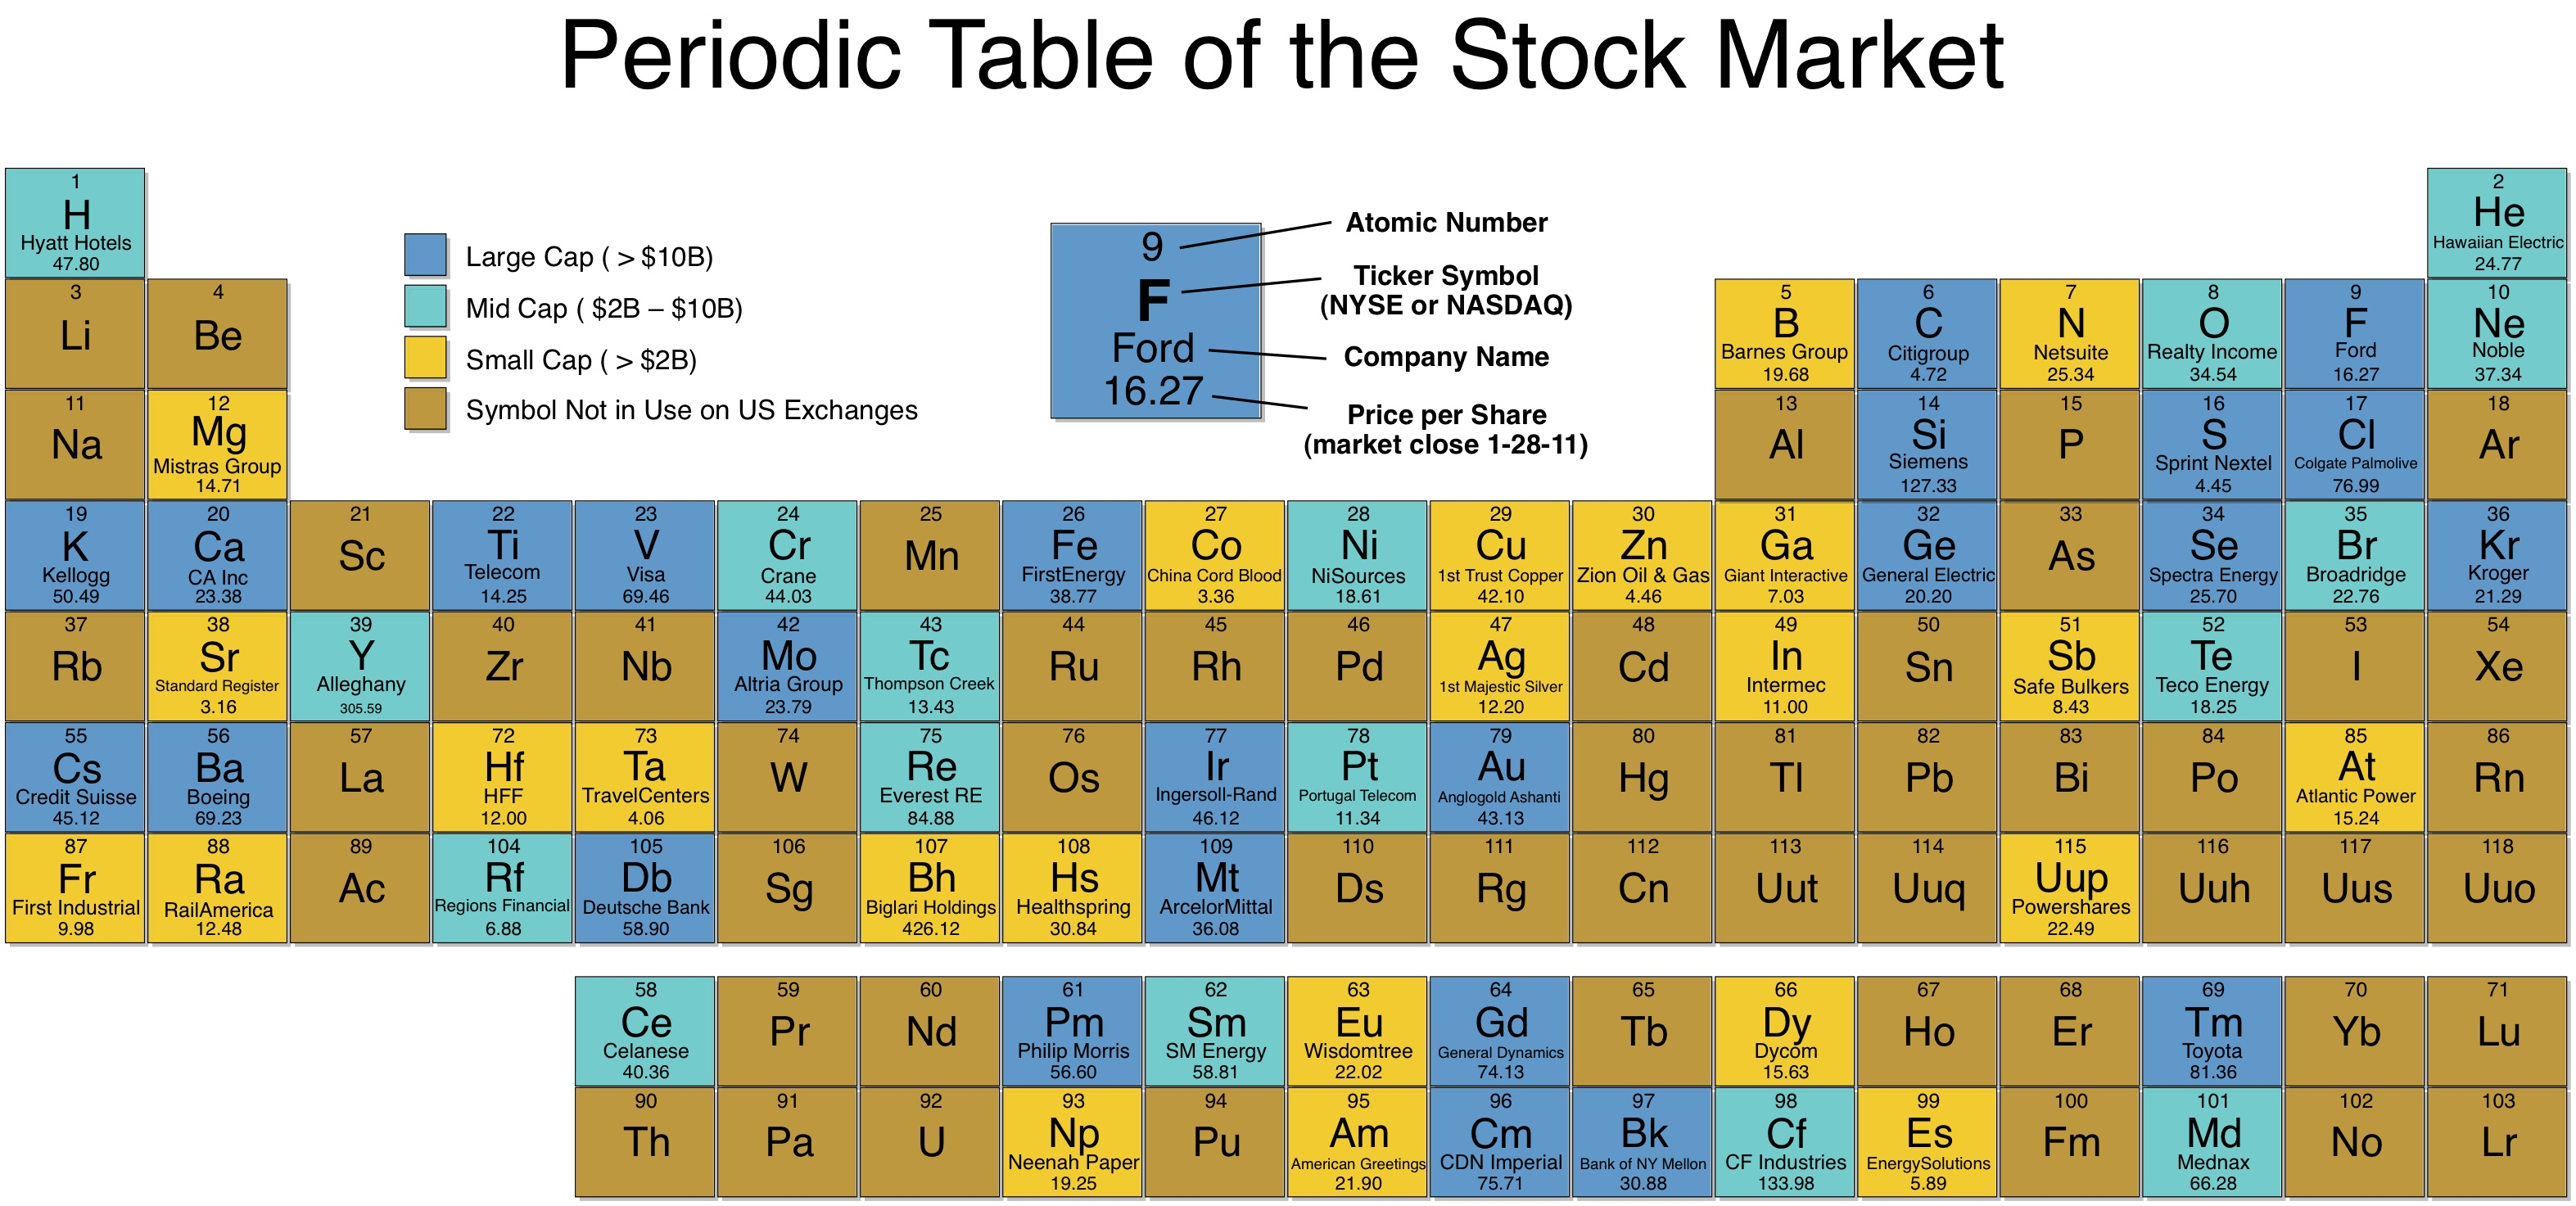 Periodic table of the stock market i can has science element symbols stock ticker symbols gamestrikefo Images